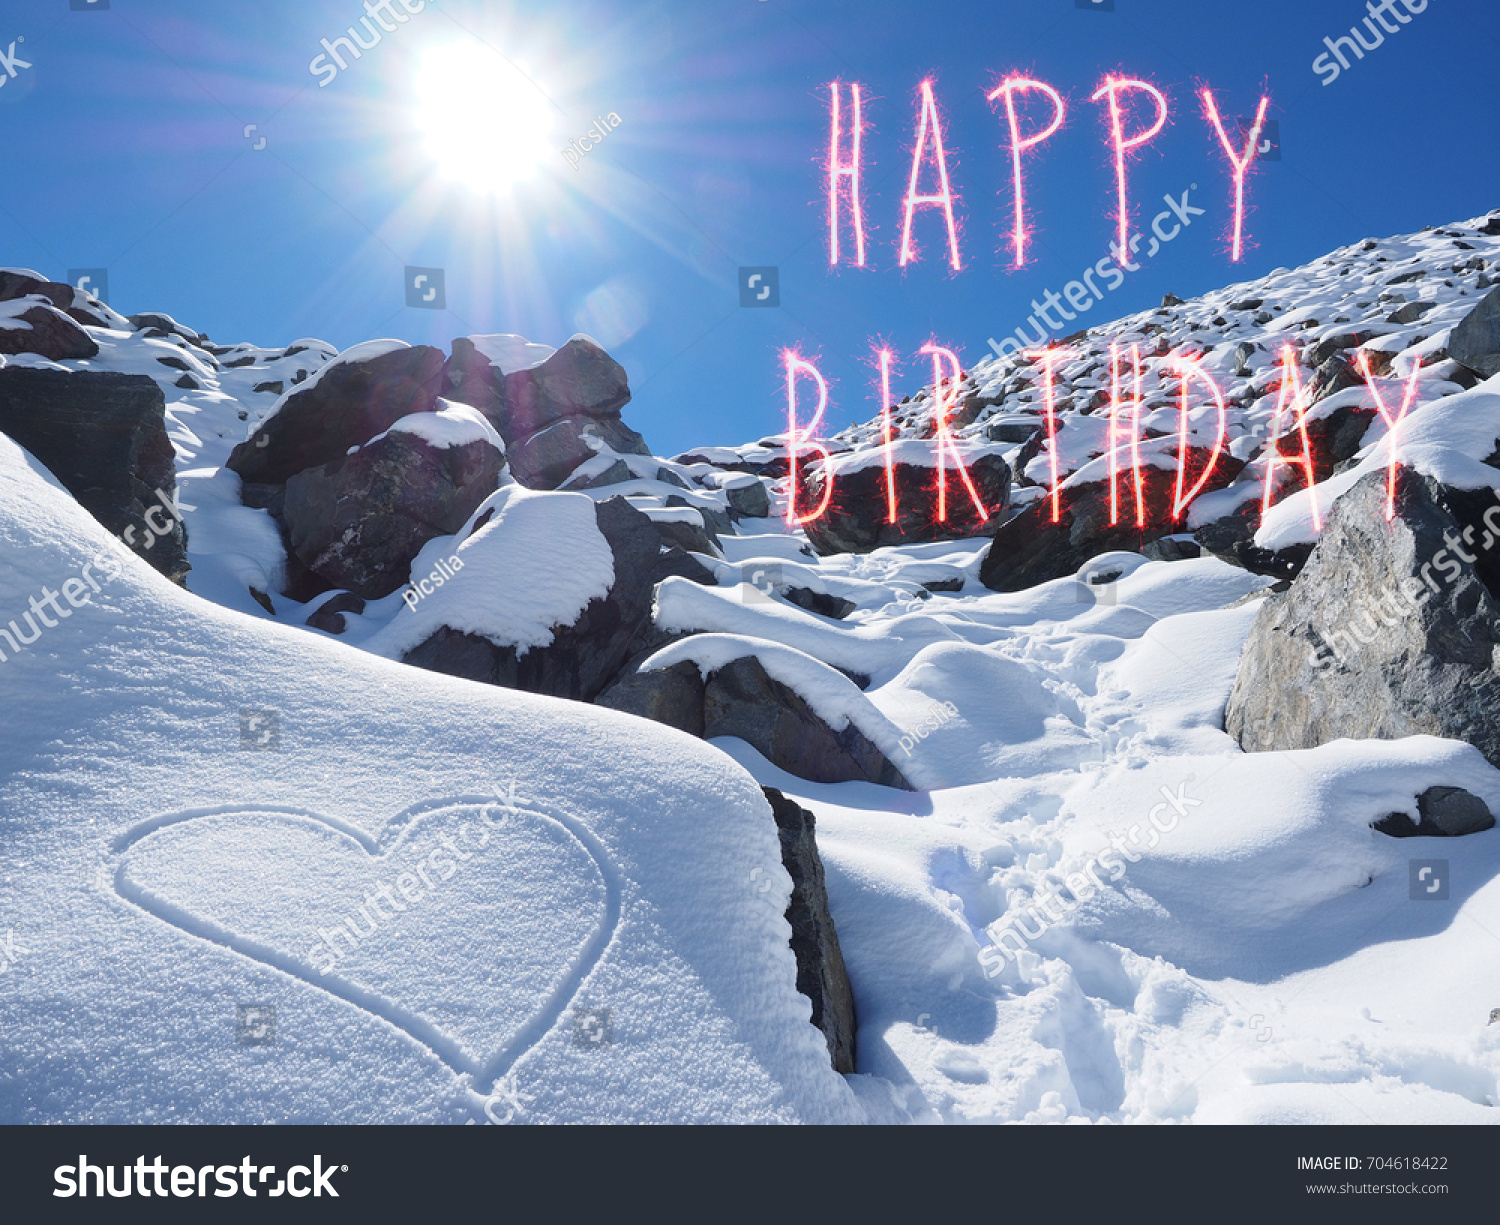 Happy birthday greeting card on snow stock photo 704618422 happy birthday greeting card on the snow with sun on the sky kristyandbryce Image collections